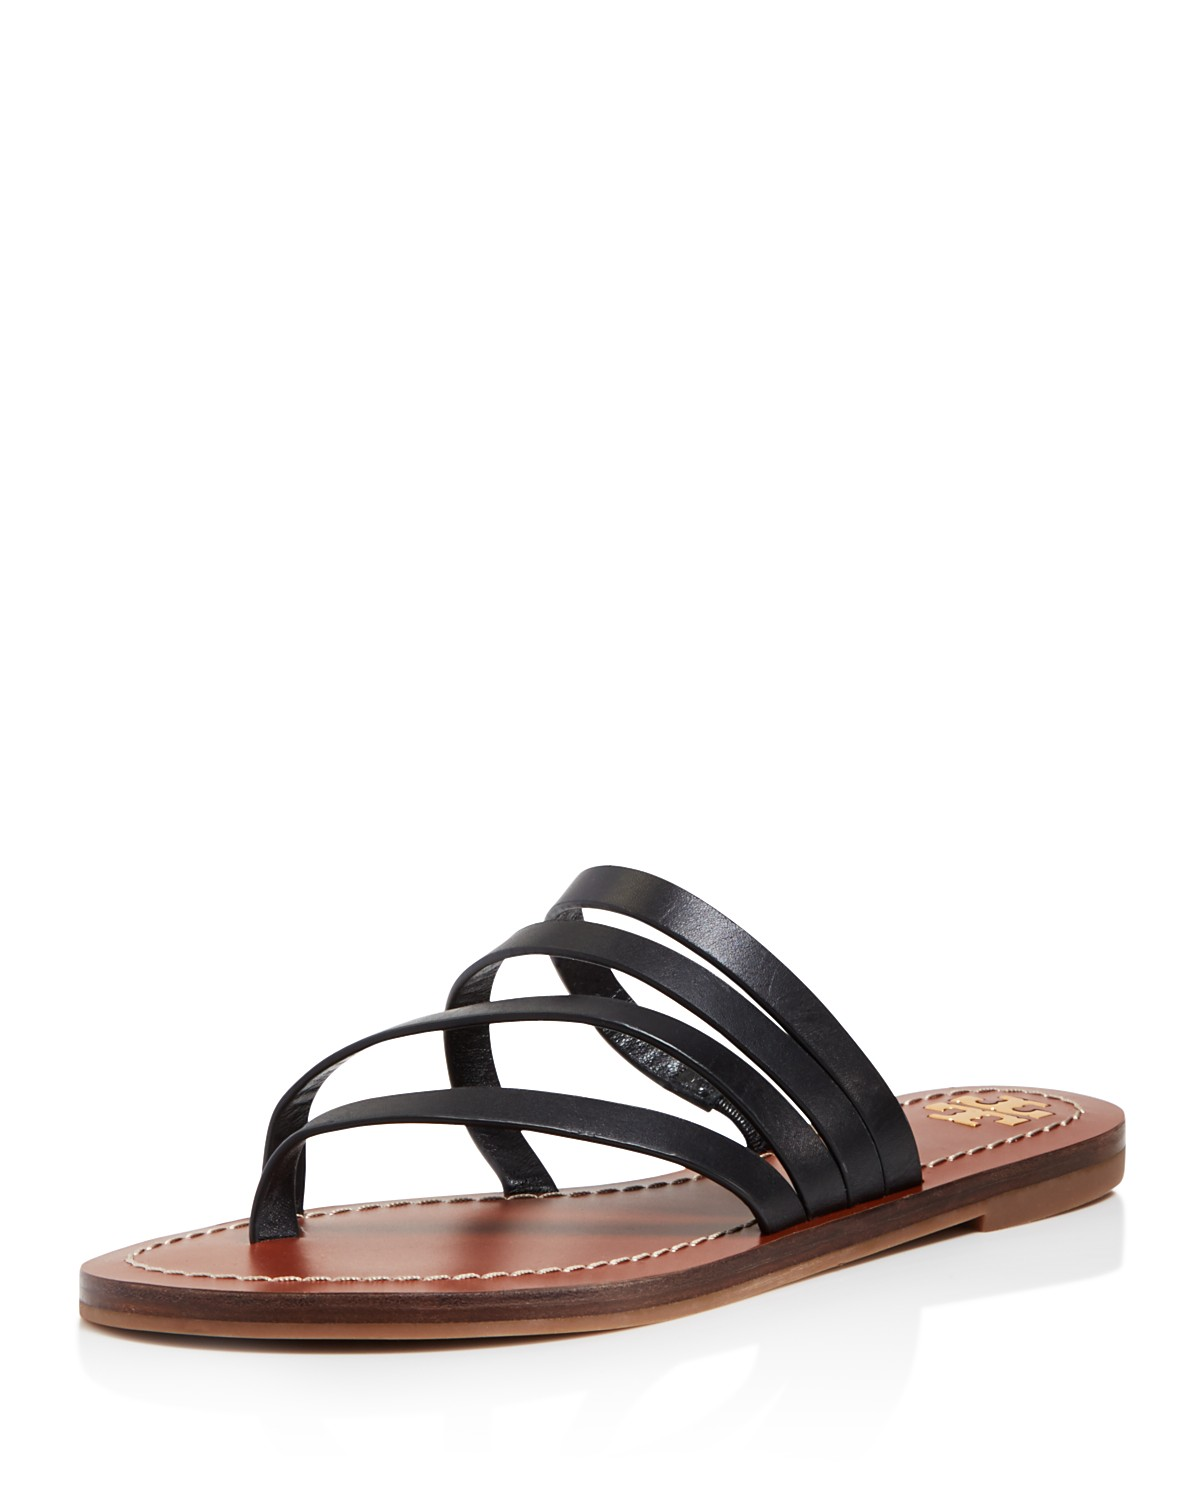 Tory Burch Women's Patos Strappy Leather Thong Sandals ByJiML